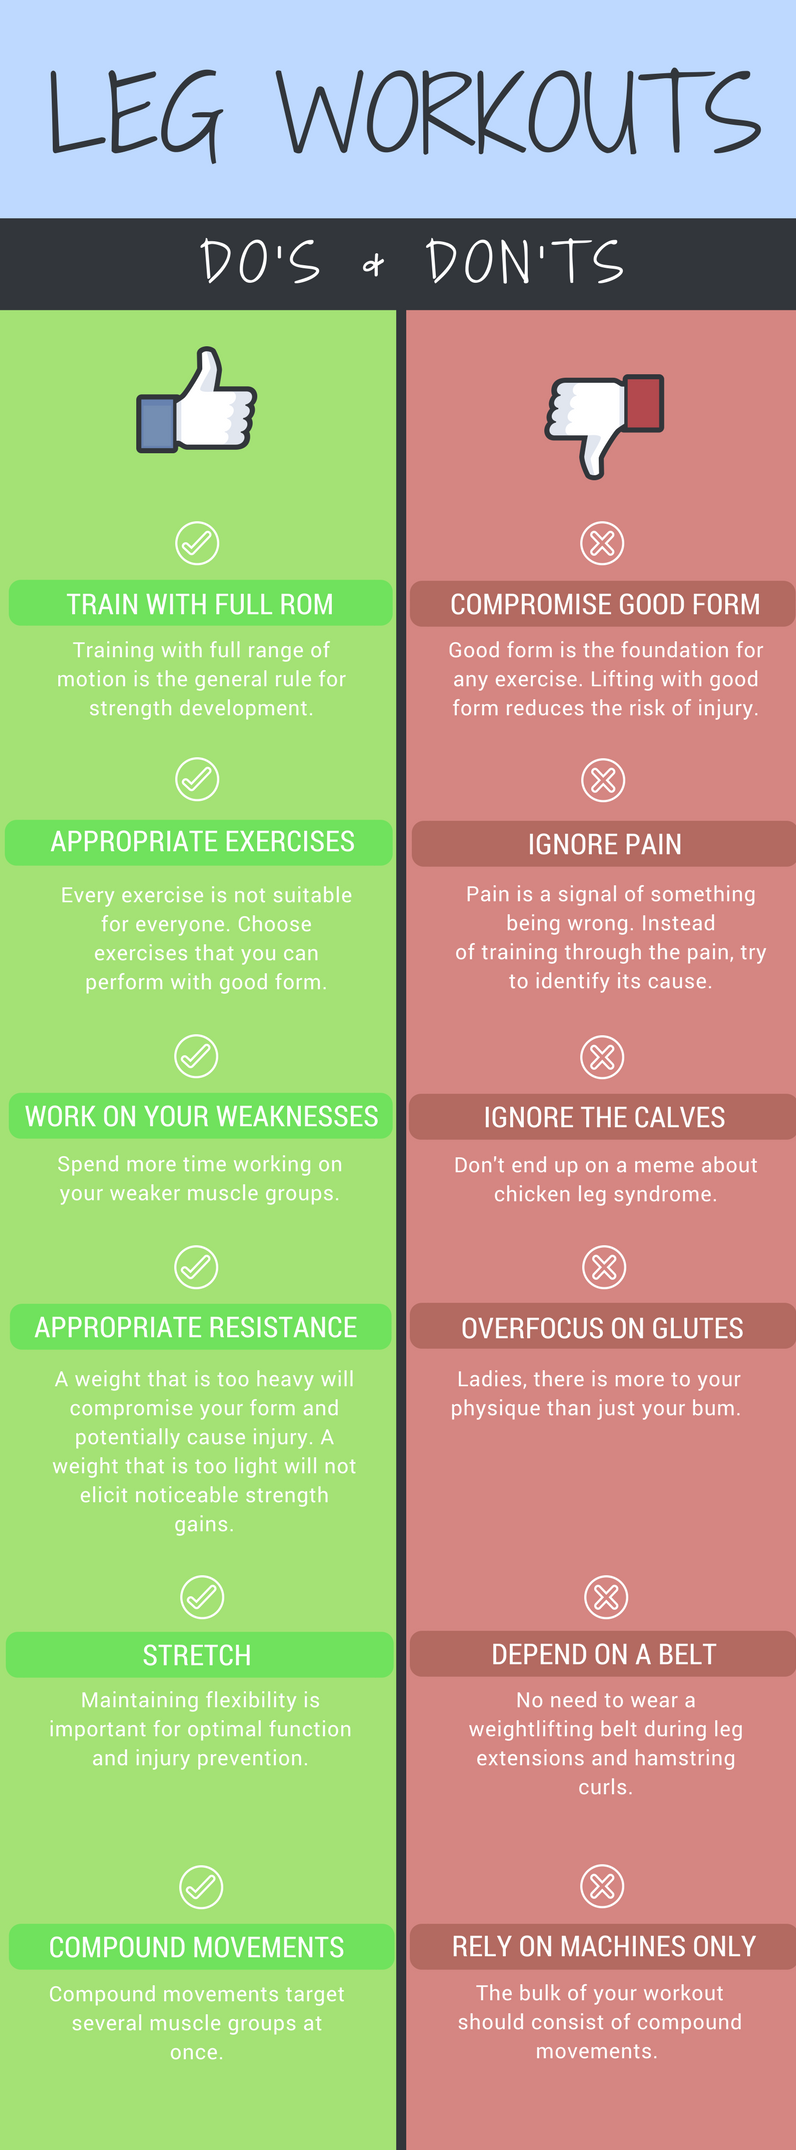 Leg Workouts Do's and Don'ts